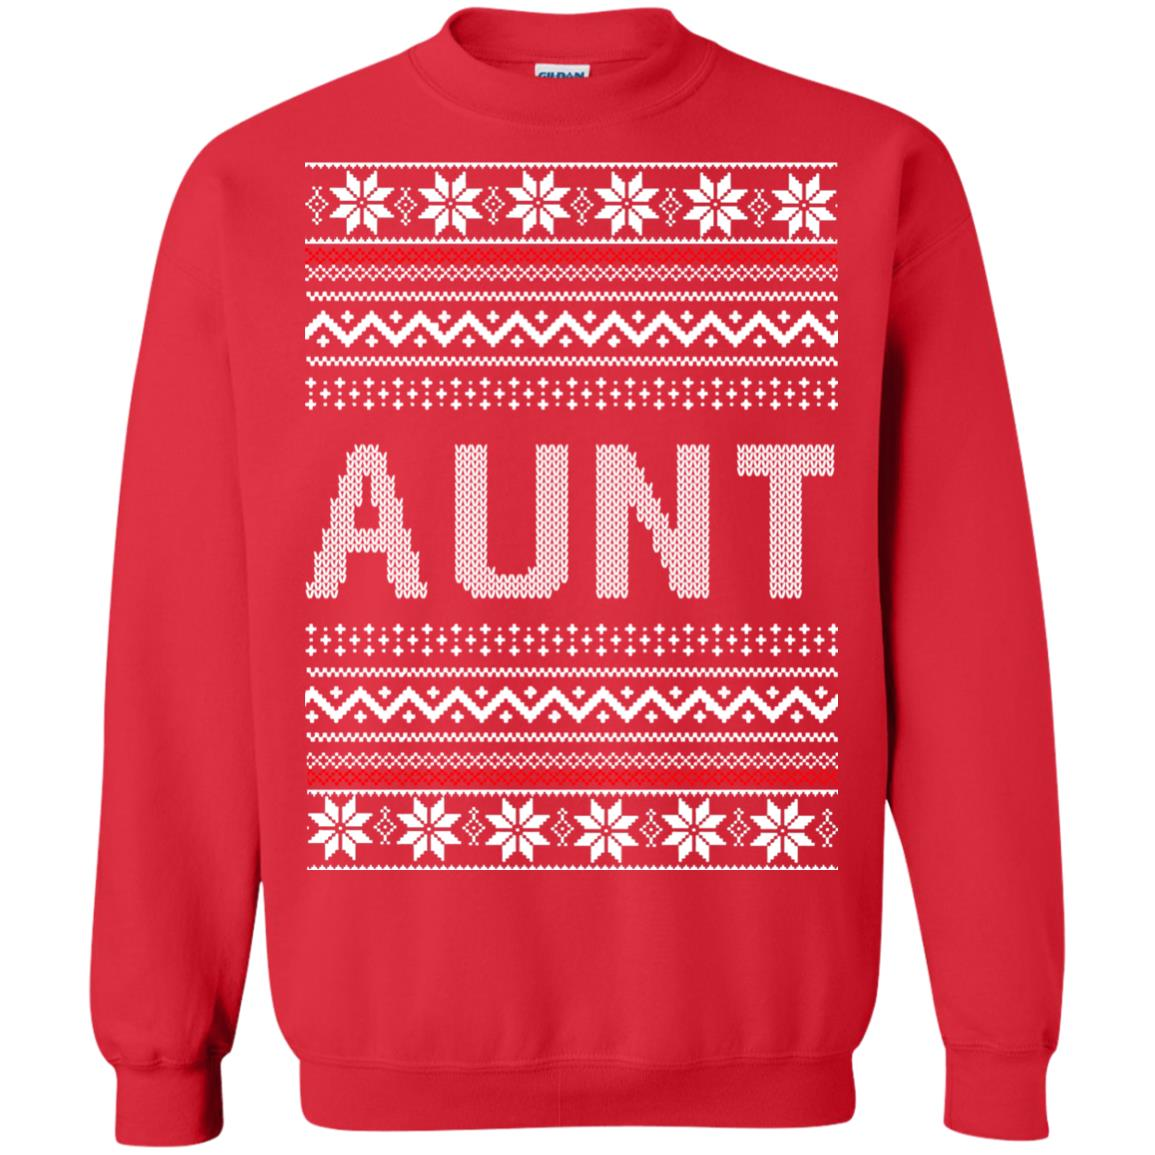 image 4619 - Aunt Ugly Christmas Sweater, Shirt, Hoodie